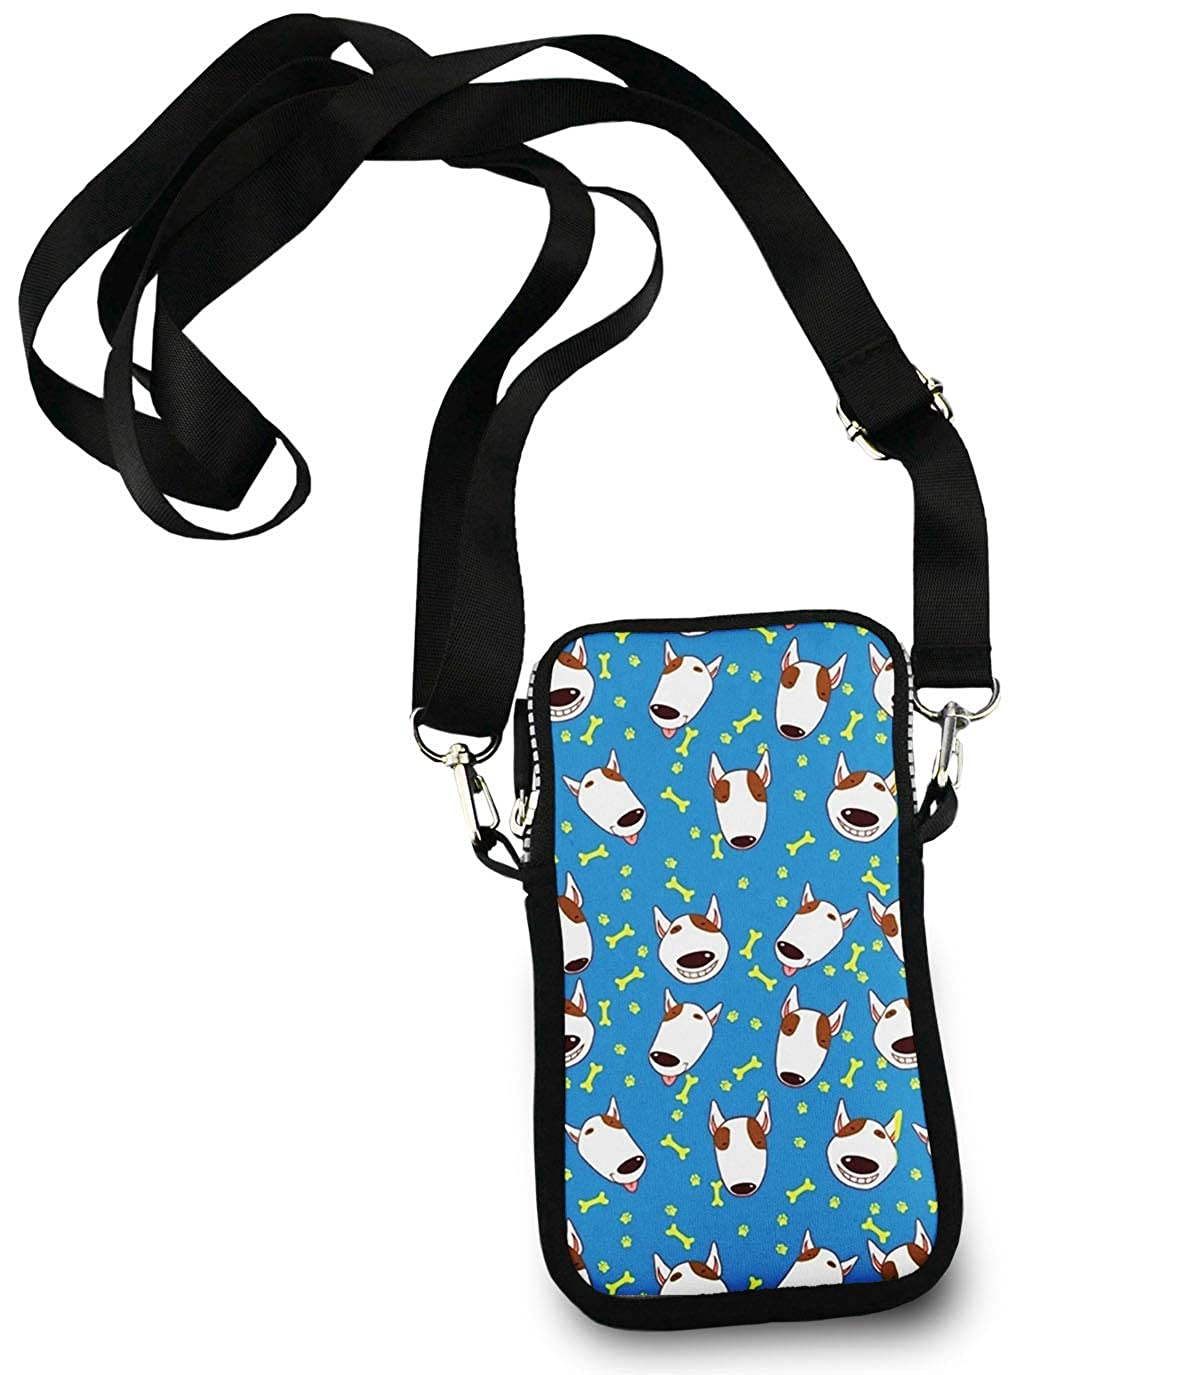 DiaNoche Designs Tote Shoulder Bags by Marley Ungaro Bull Terrier Dog Watermelon